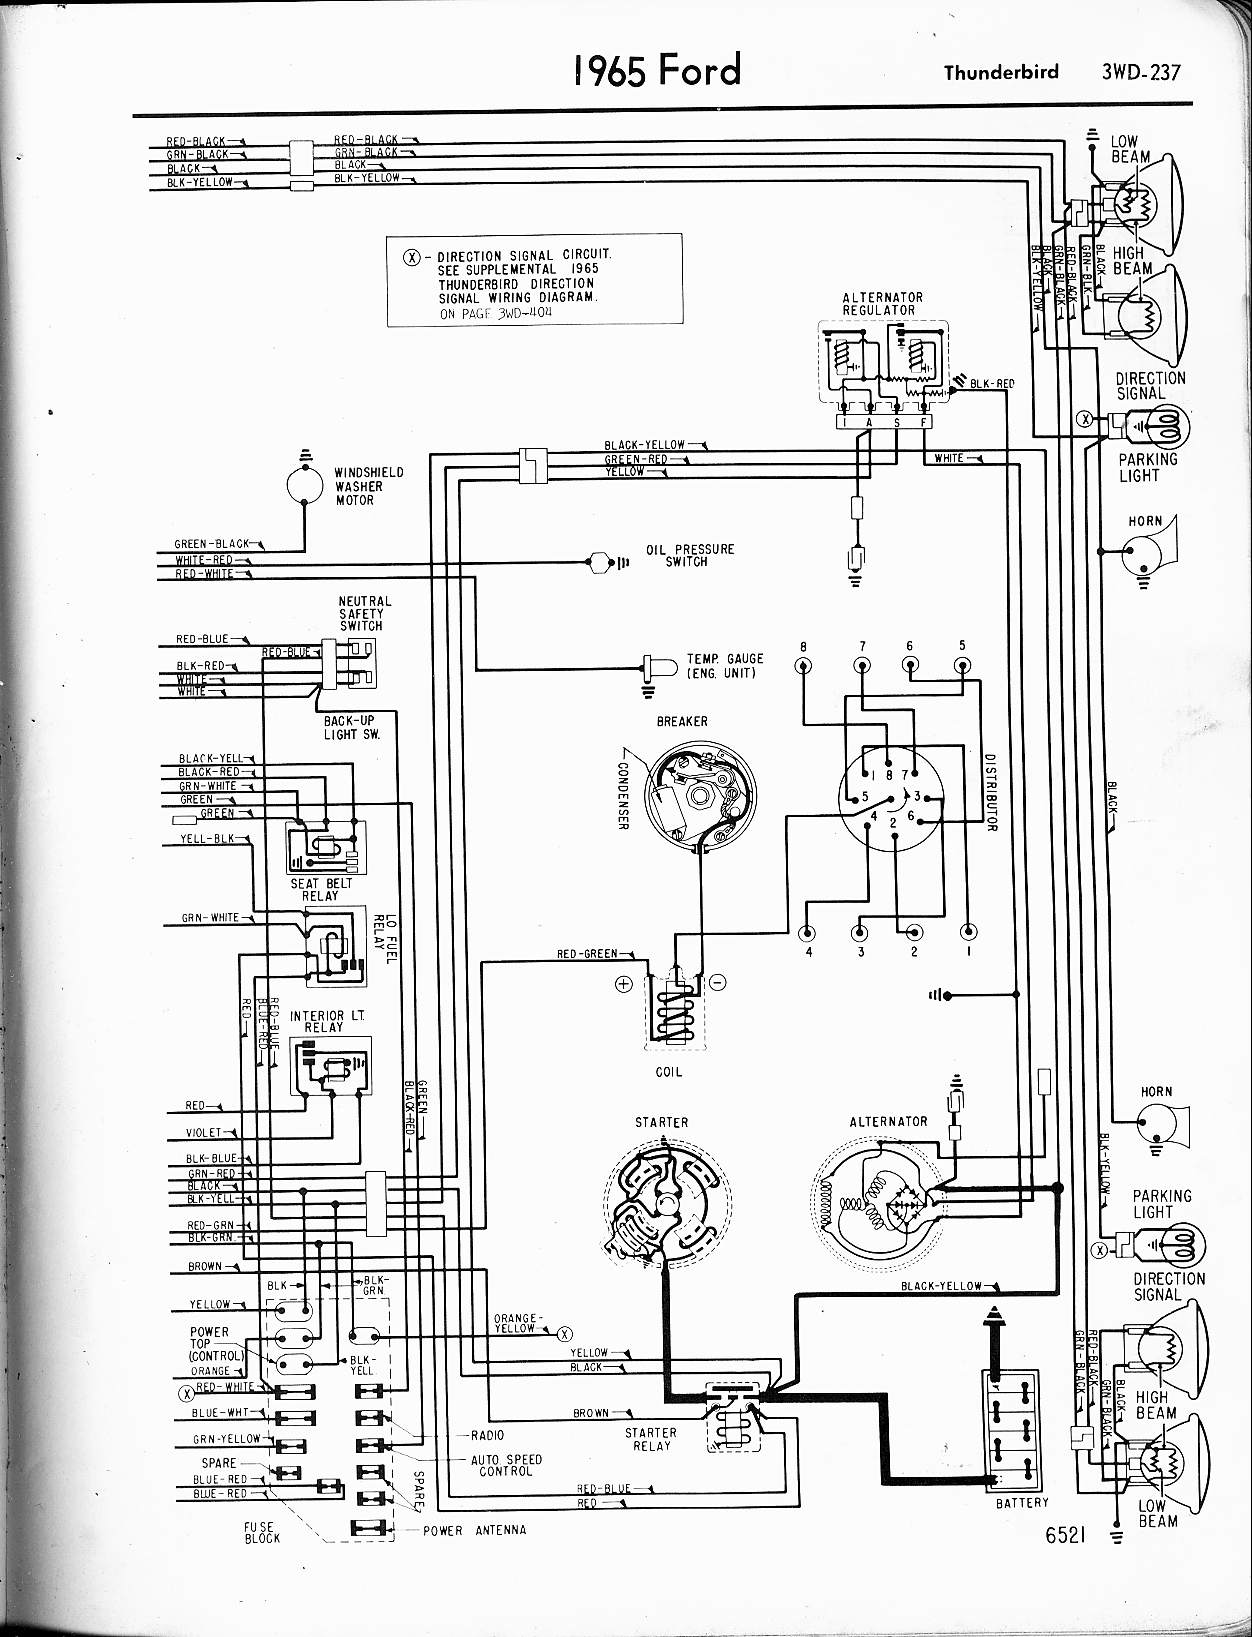 MWire5765 237 57 65 ford wiring diagrams 1965 ford f100 wiring schematics at crackthecode.co